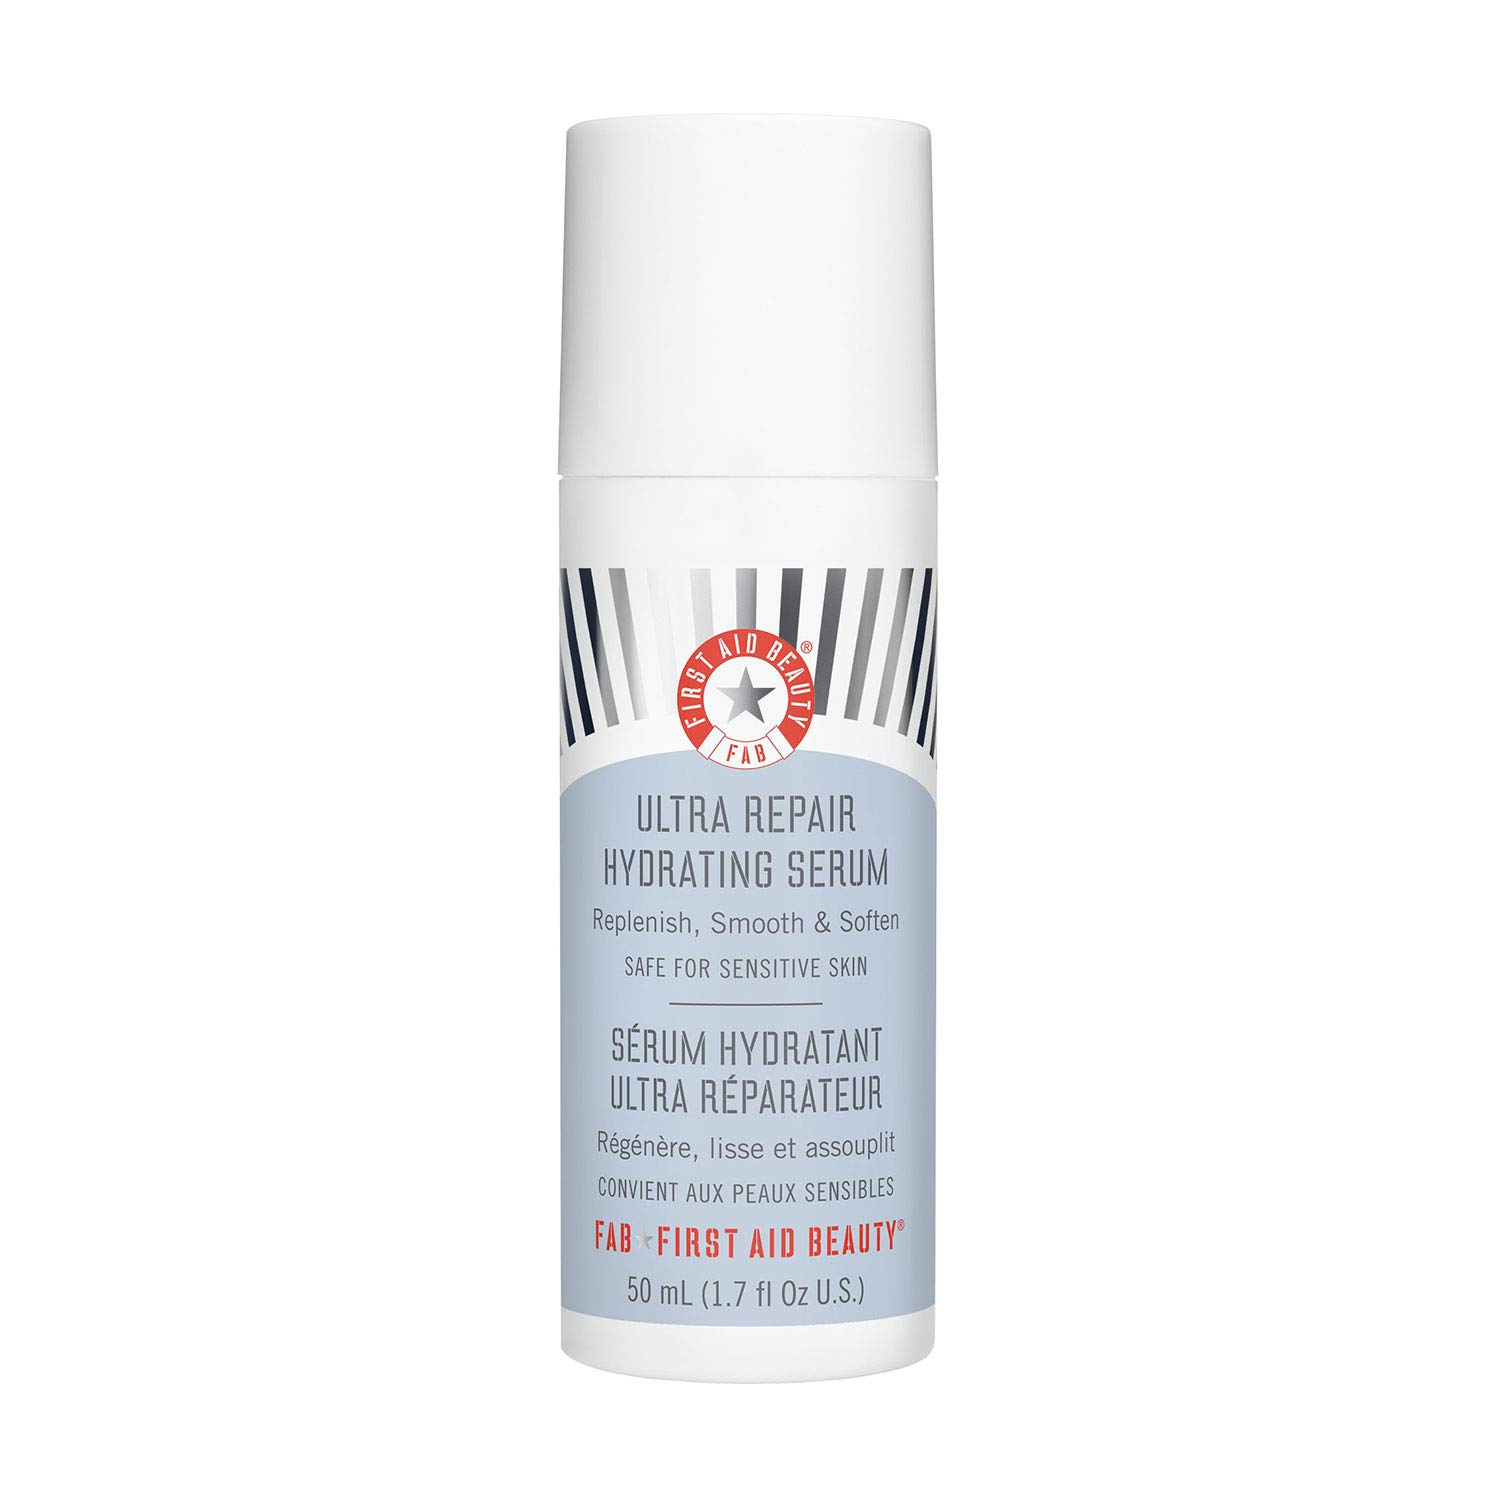 First Aid Beauty Ultra Repair Hydrating Serum with Hyaluronic Acid, Anti-Aging Face Serum for Sensitive Skin